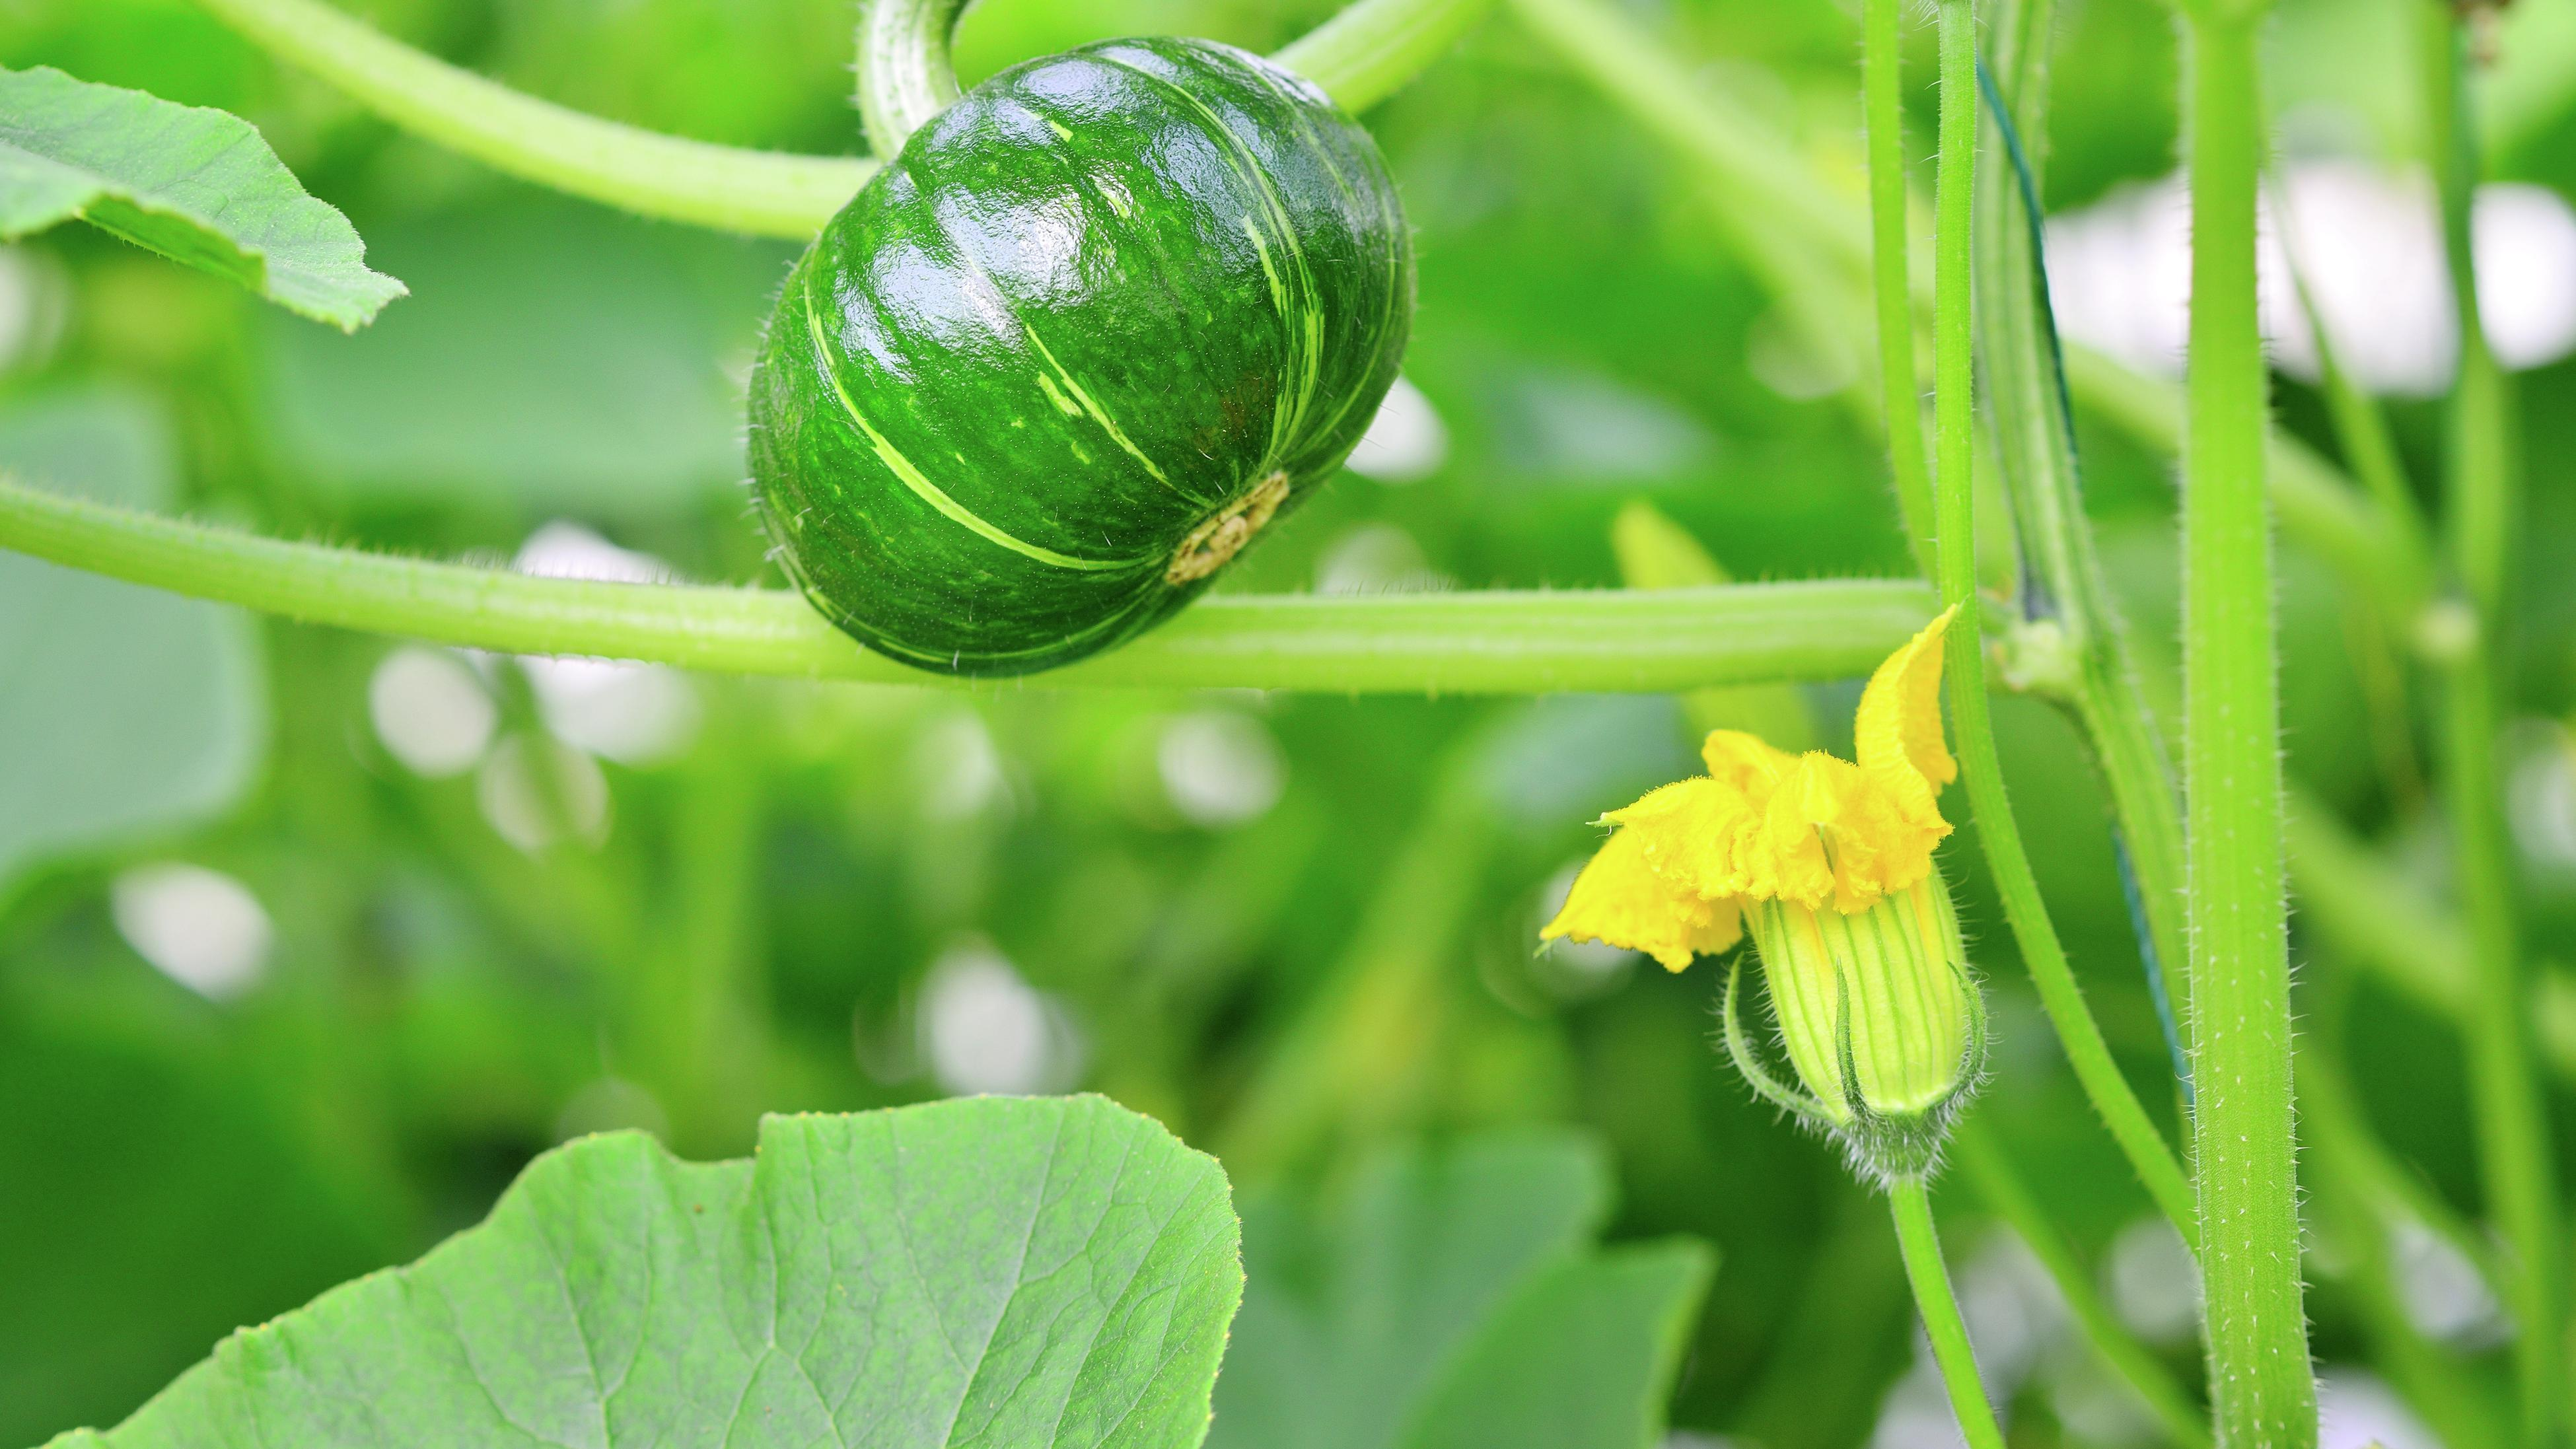 One unripe green pumpkin on the vine and a yellow flower.